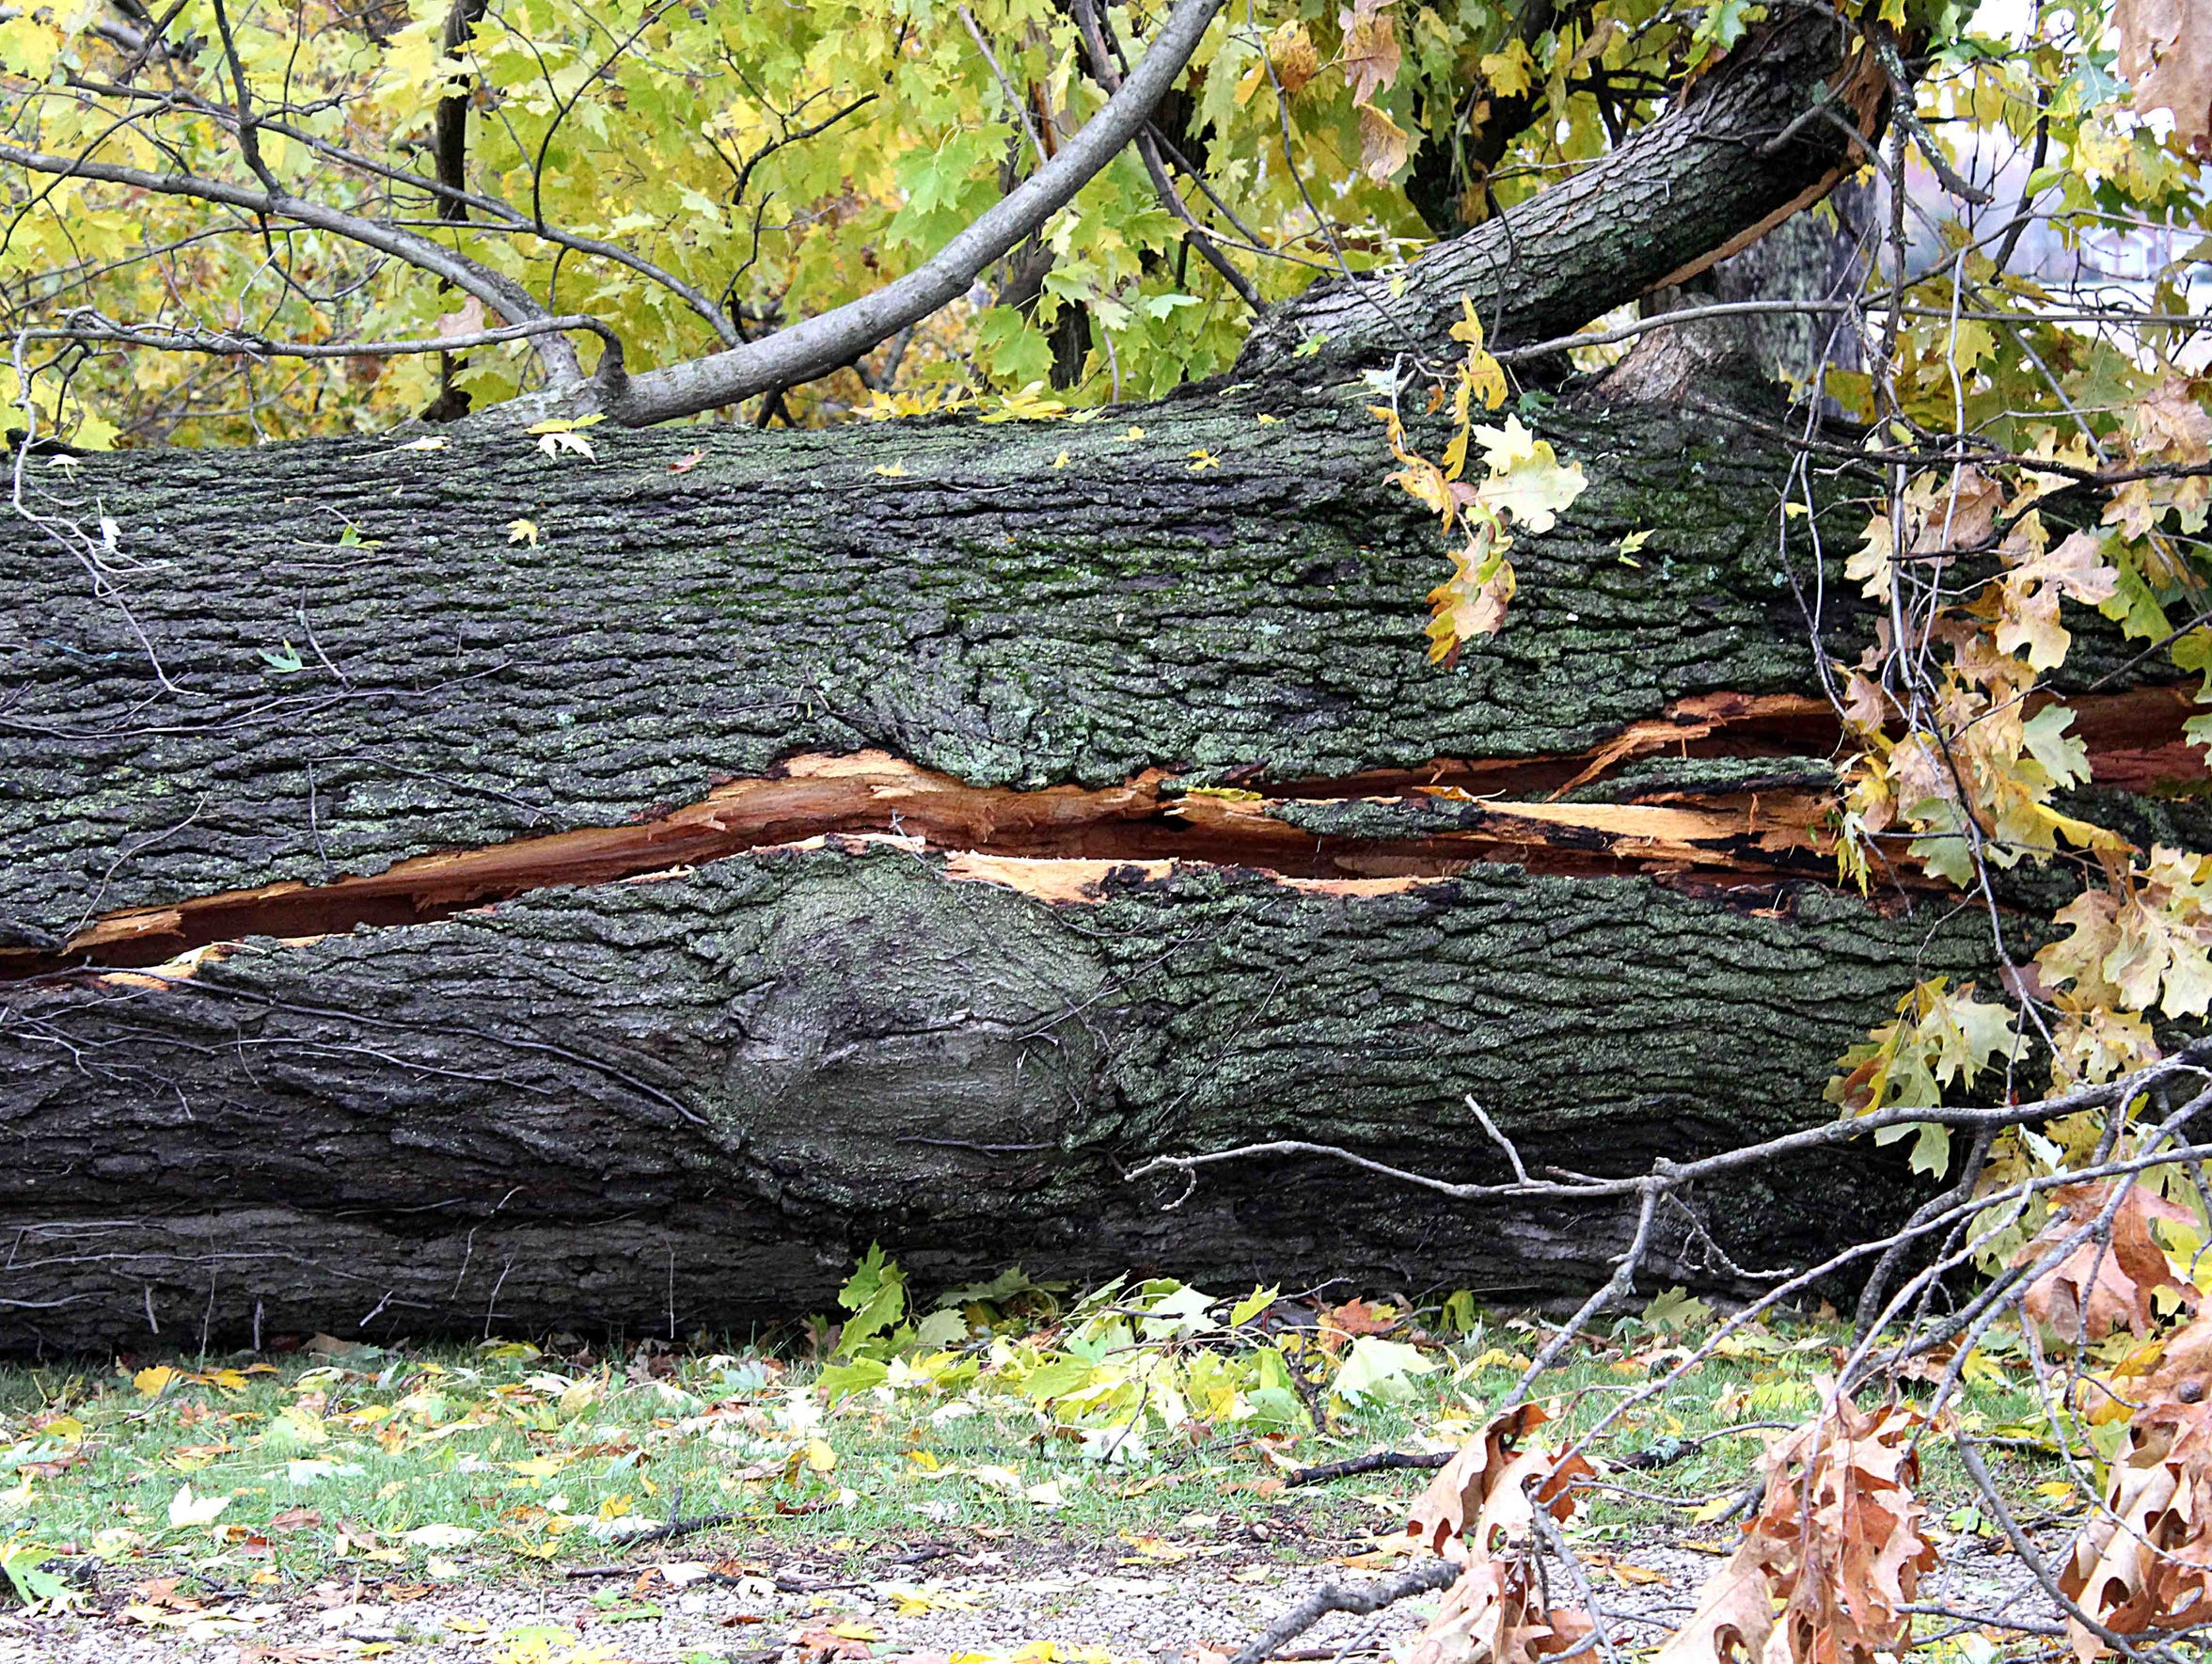 One of the massive oak trees that fell onto the Wrights' vehicle during a storm in November is seen the morning after the accident.